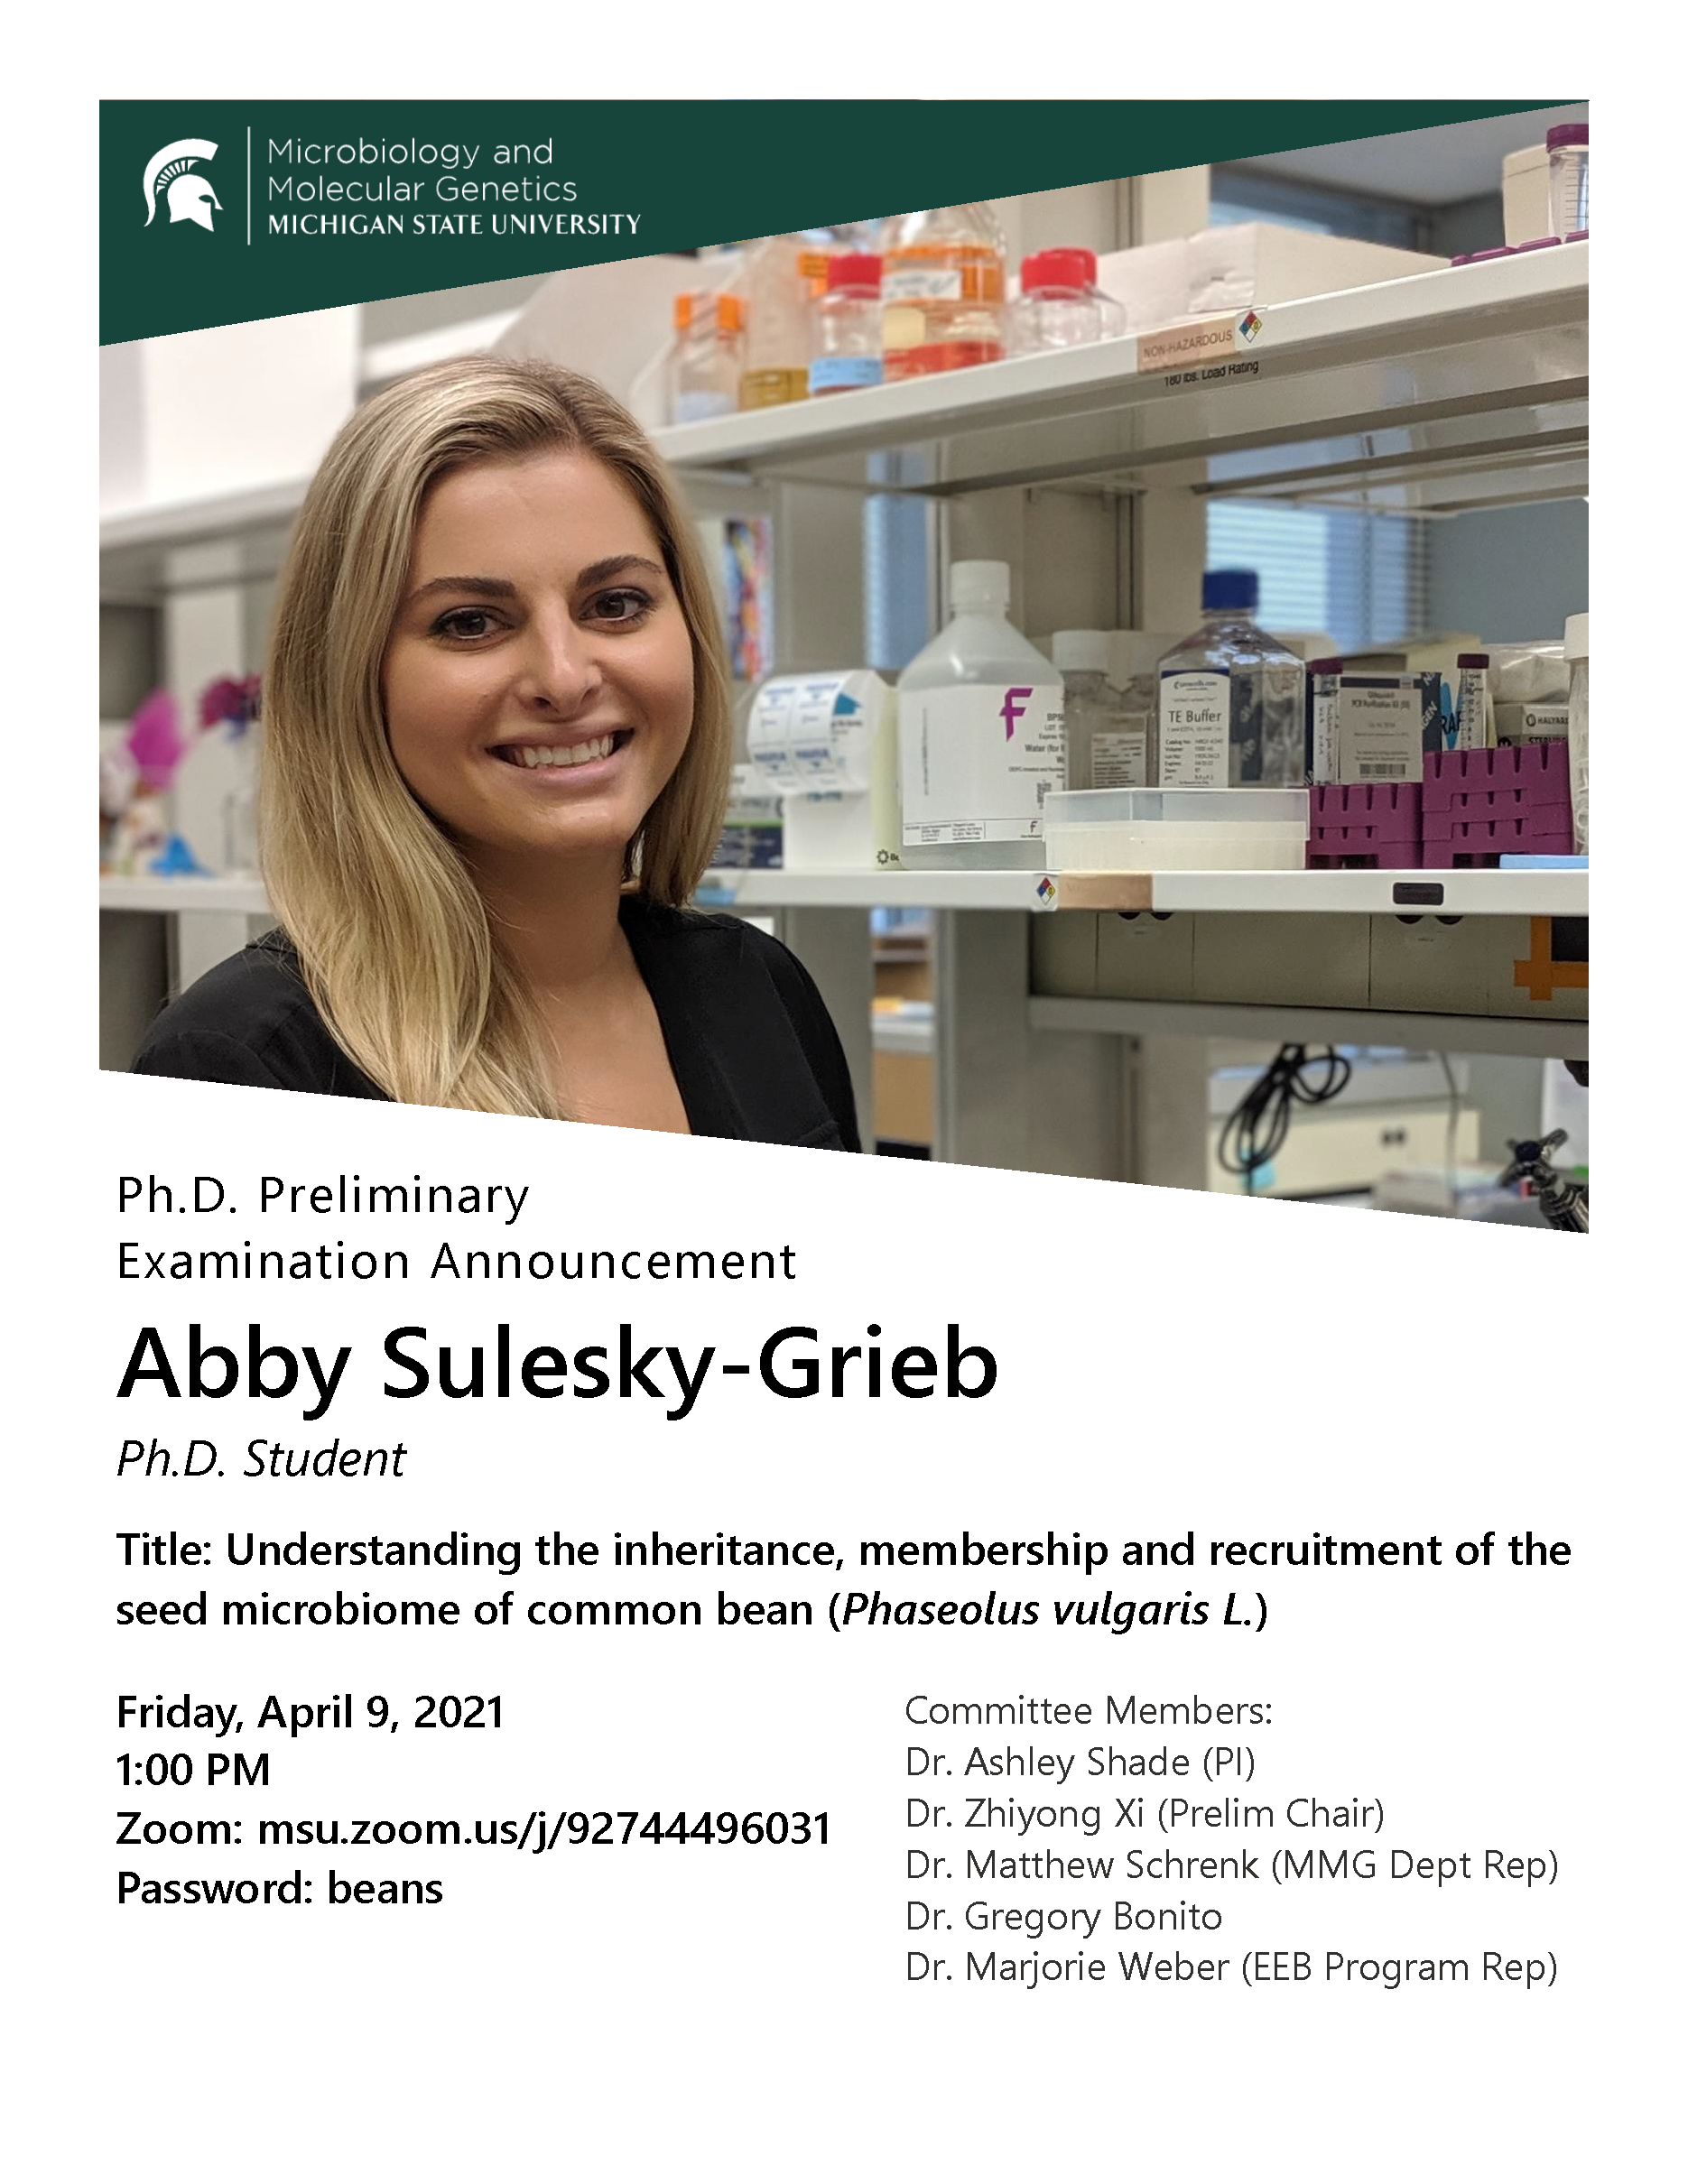 Abby Sulesky-Grieb Ph.D. Preliminary Examination Announcement